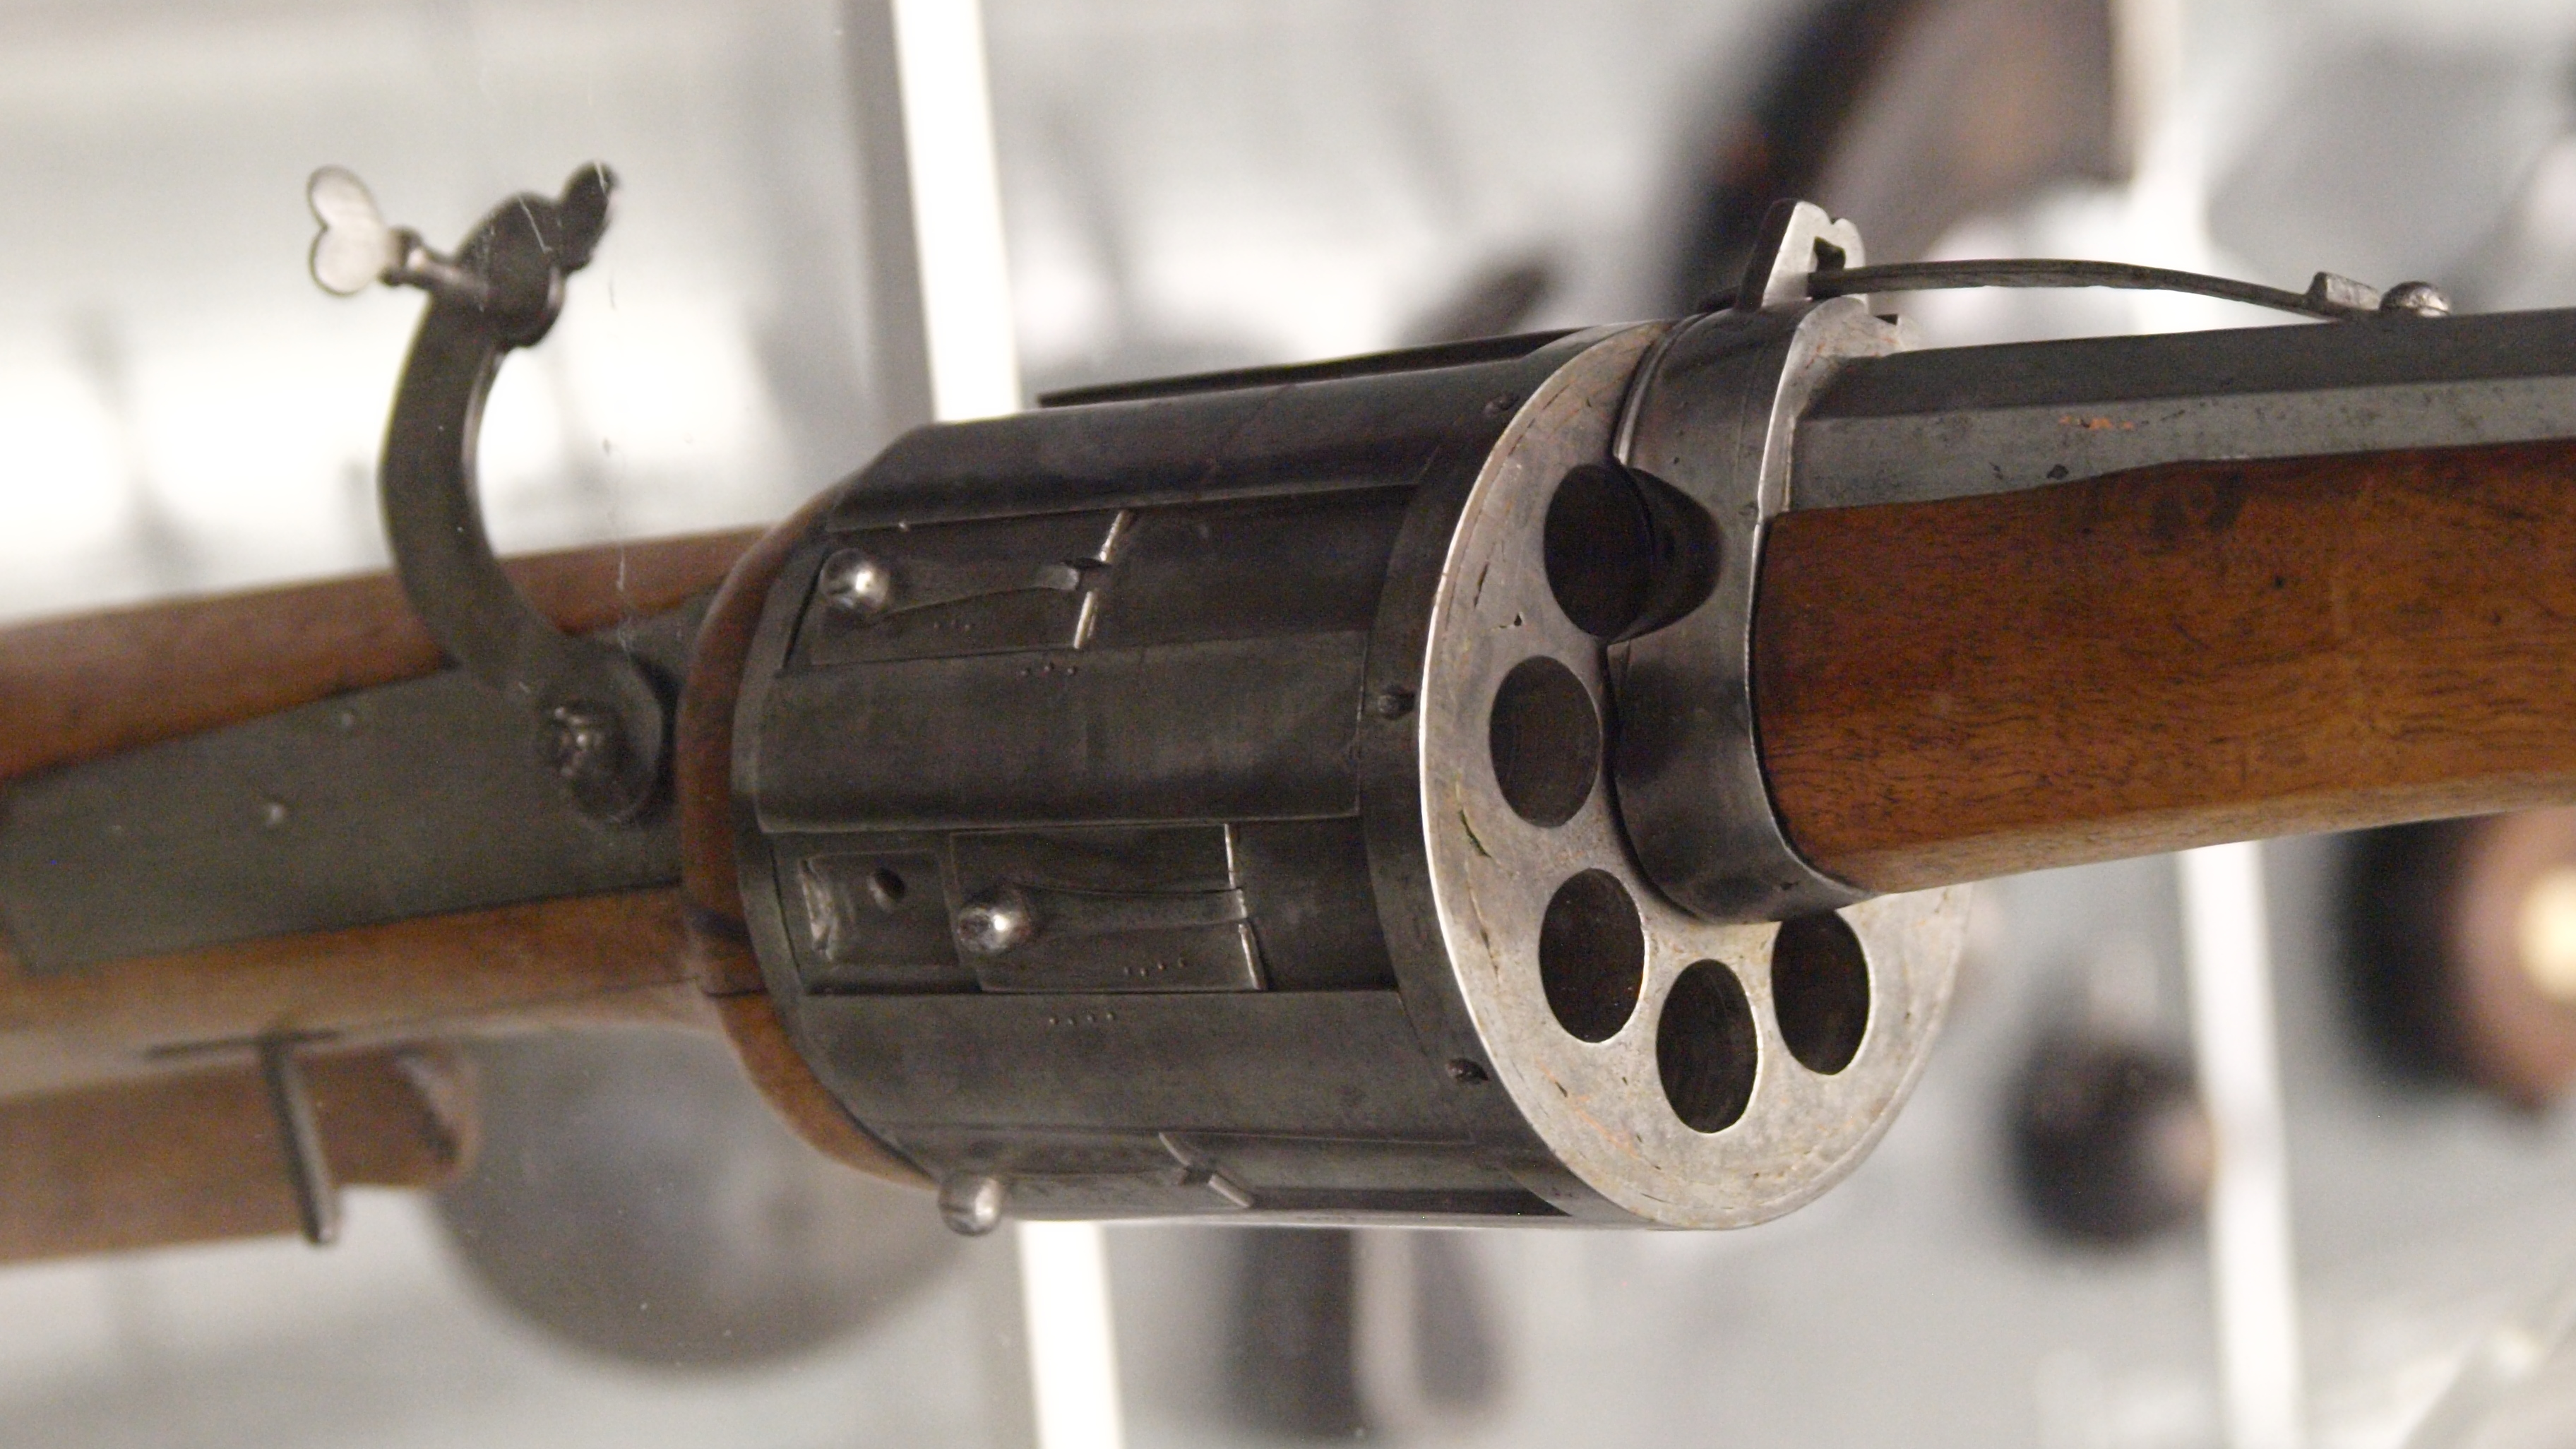 Covering the Newbery        The Matchlock Gun         scopenotes         The Dovecote   blogger This is the weekly list of Free Homeschool Curriculum and Resources  compiled by Jamerrill from If you aren t a homeschooler  but you re a  parent  teacher